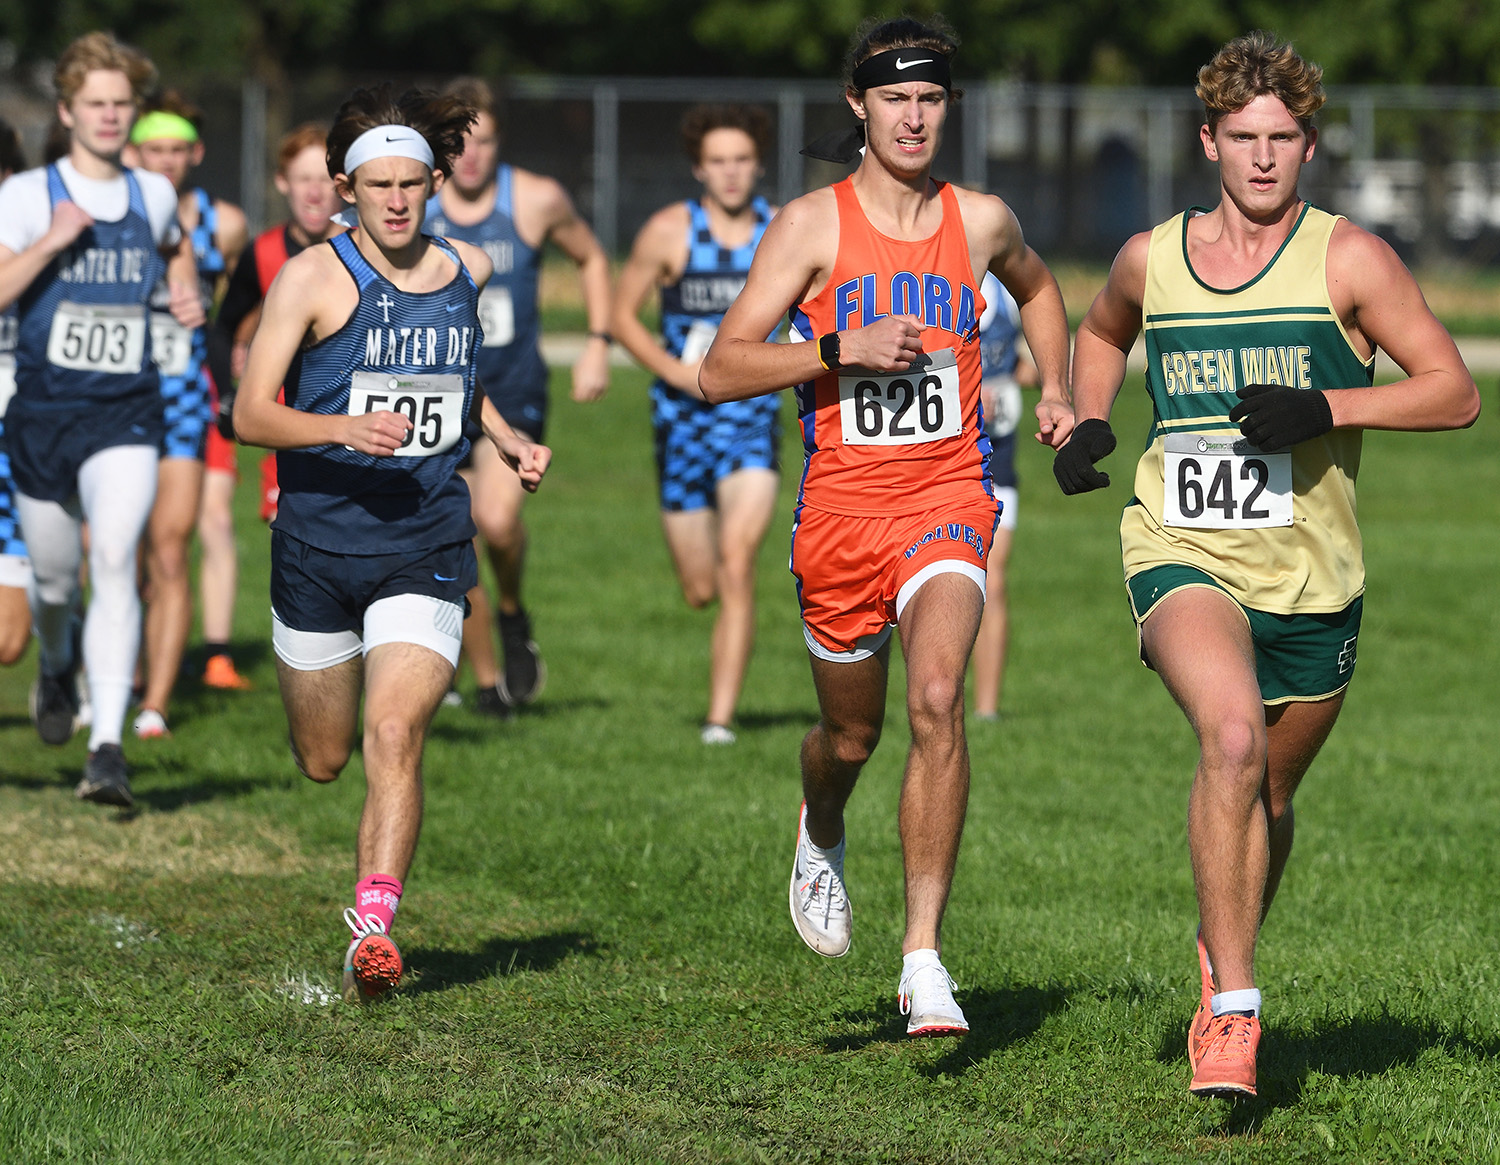 Mattoon's Davee rallies in final mile to win 4th title at Bulldog Invite